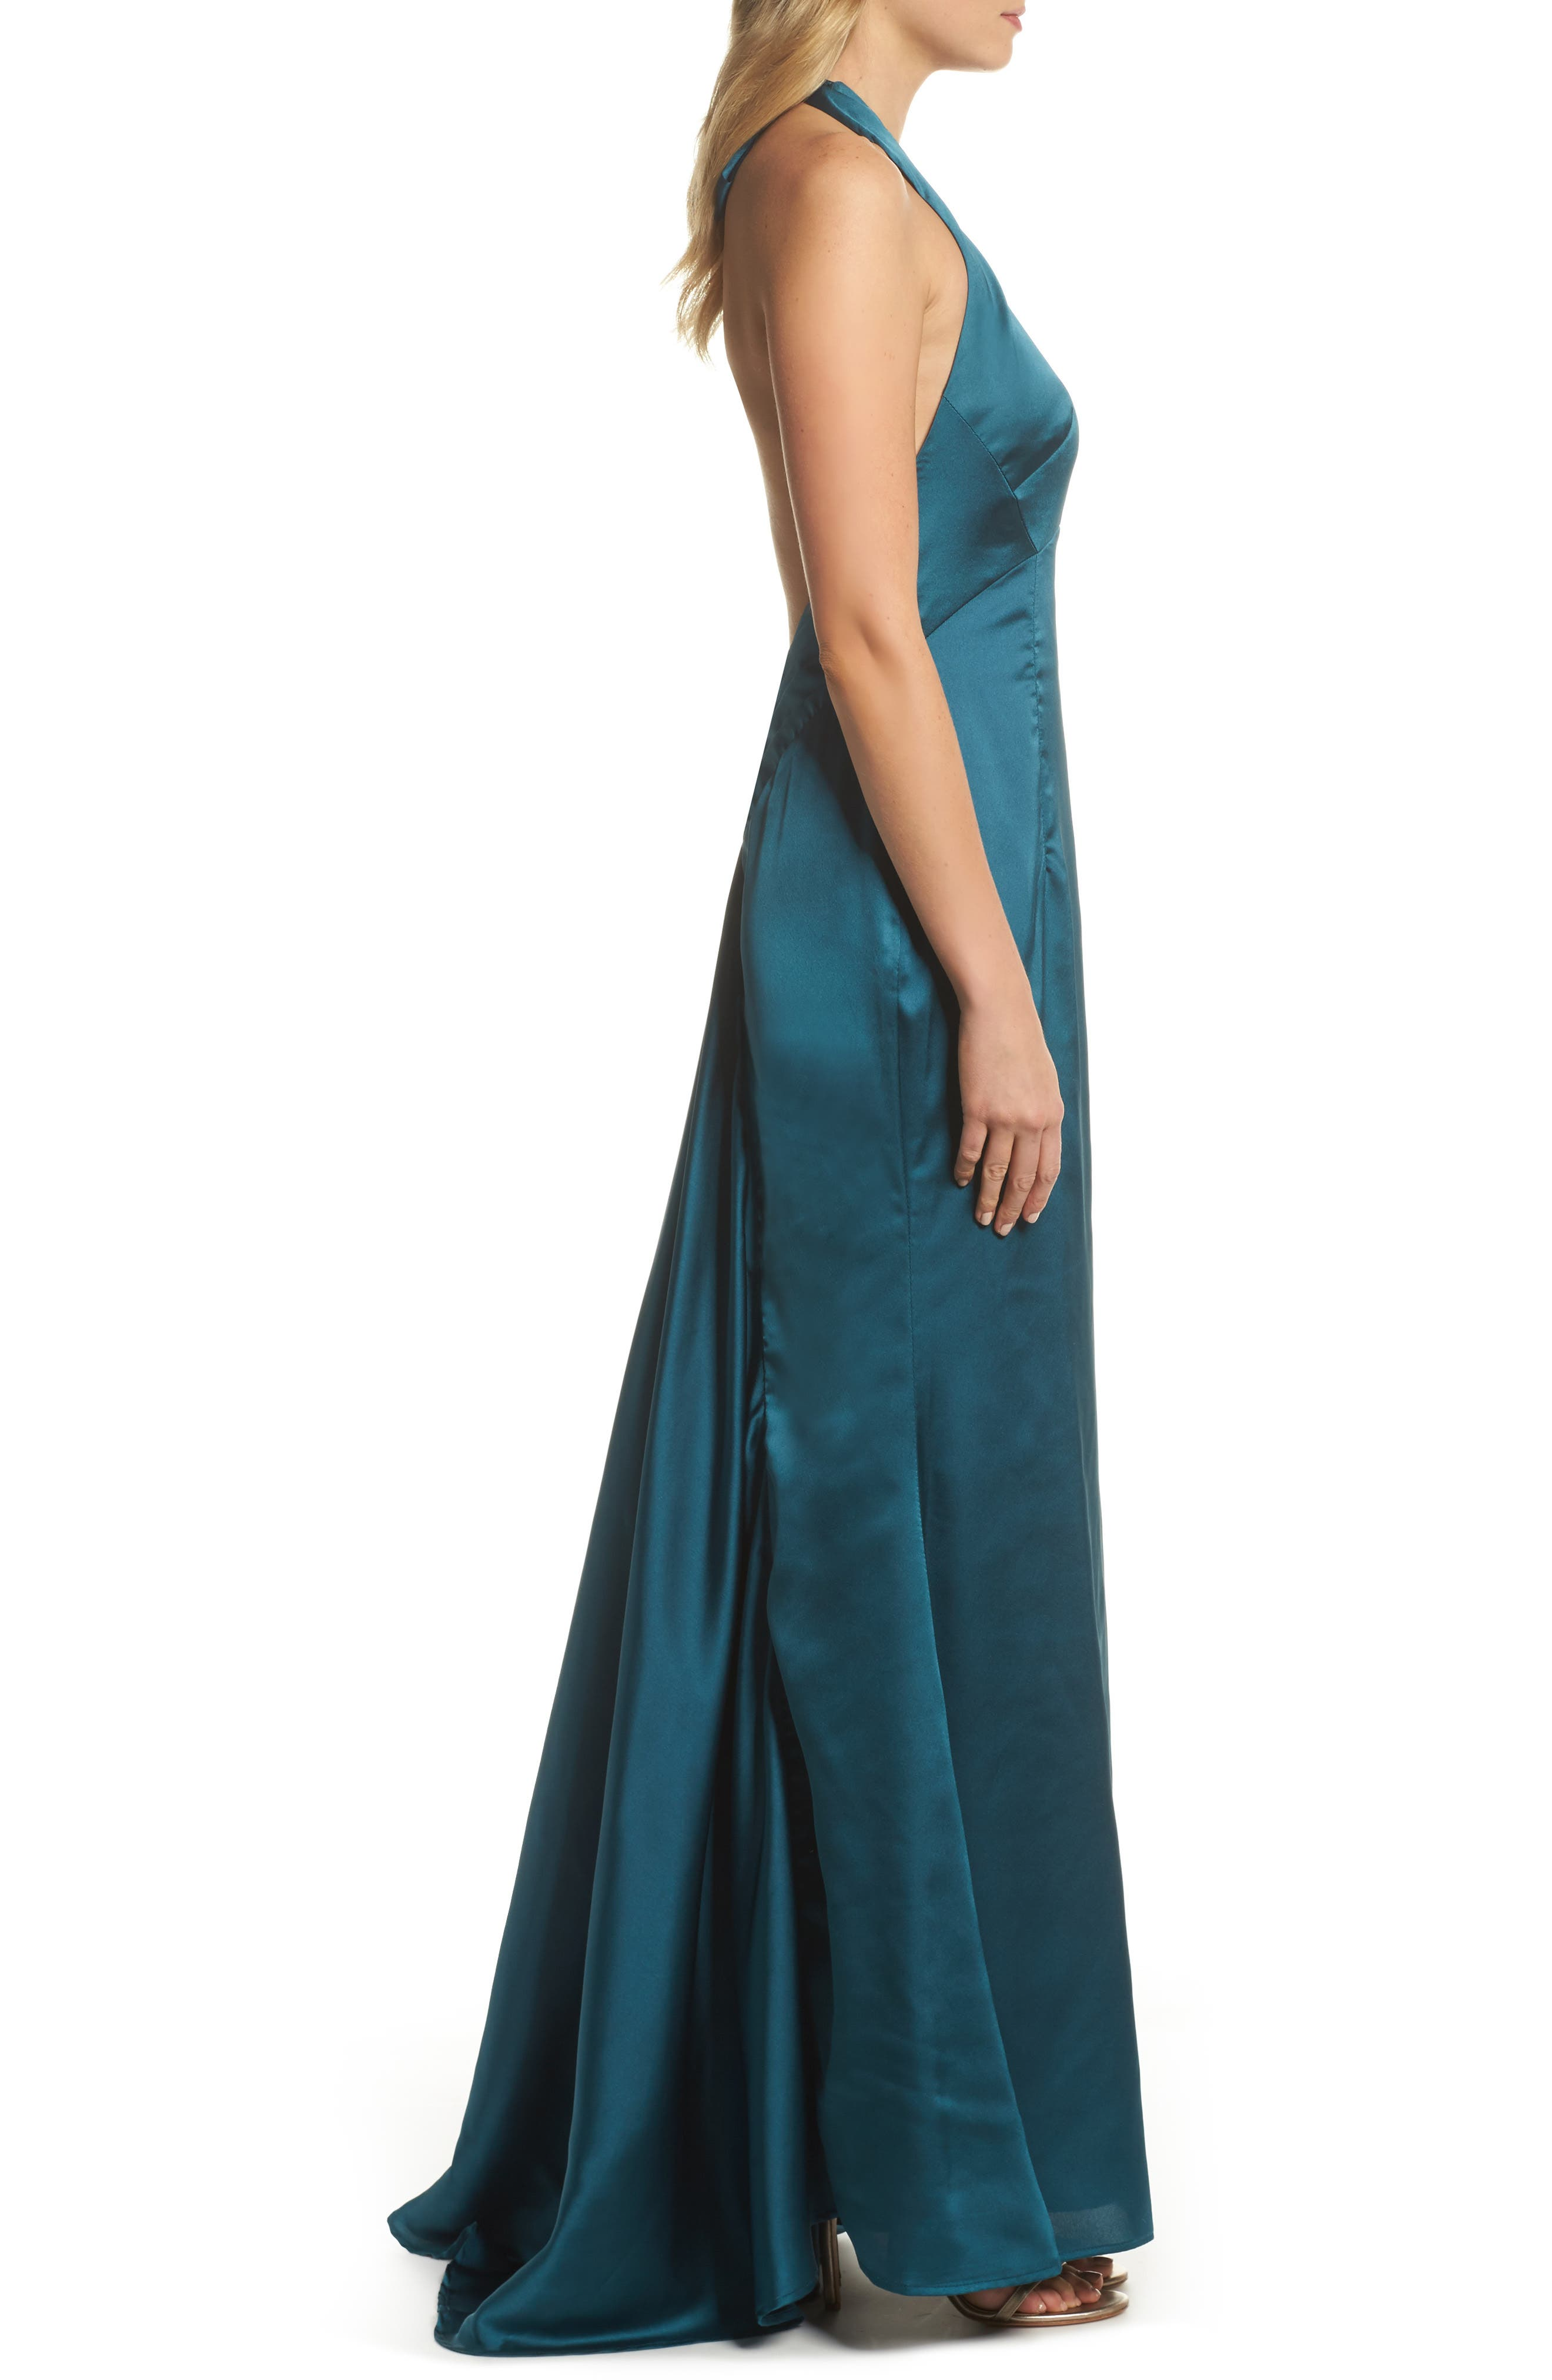 Trixie Halter Gown,                             Alternate thumbnail 3, color,                             Green